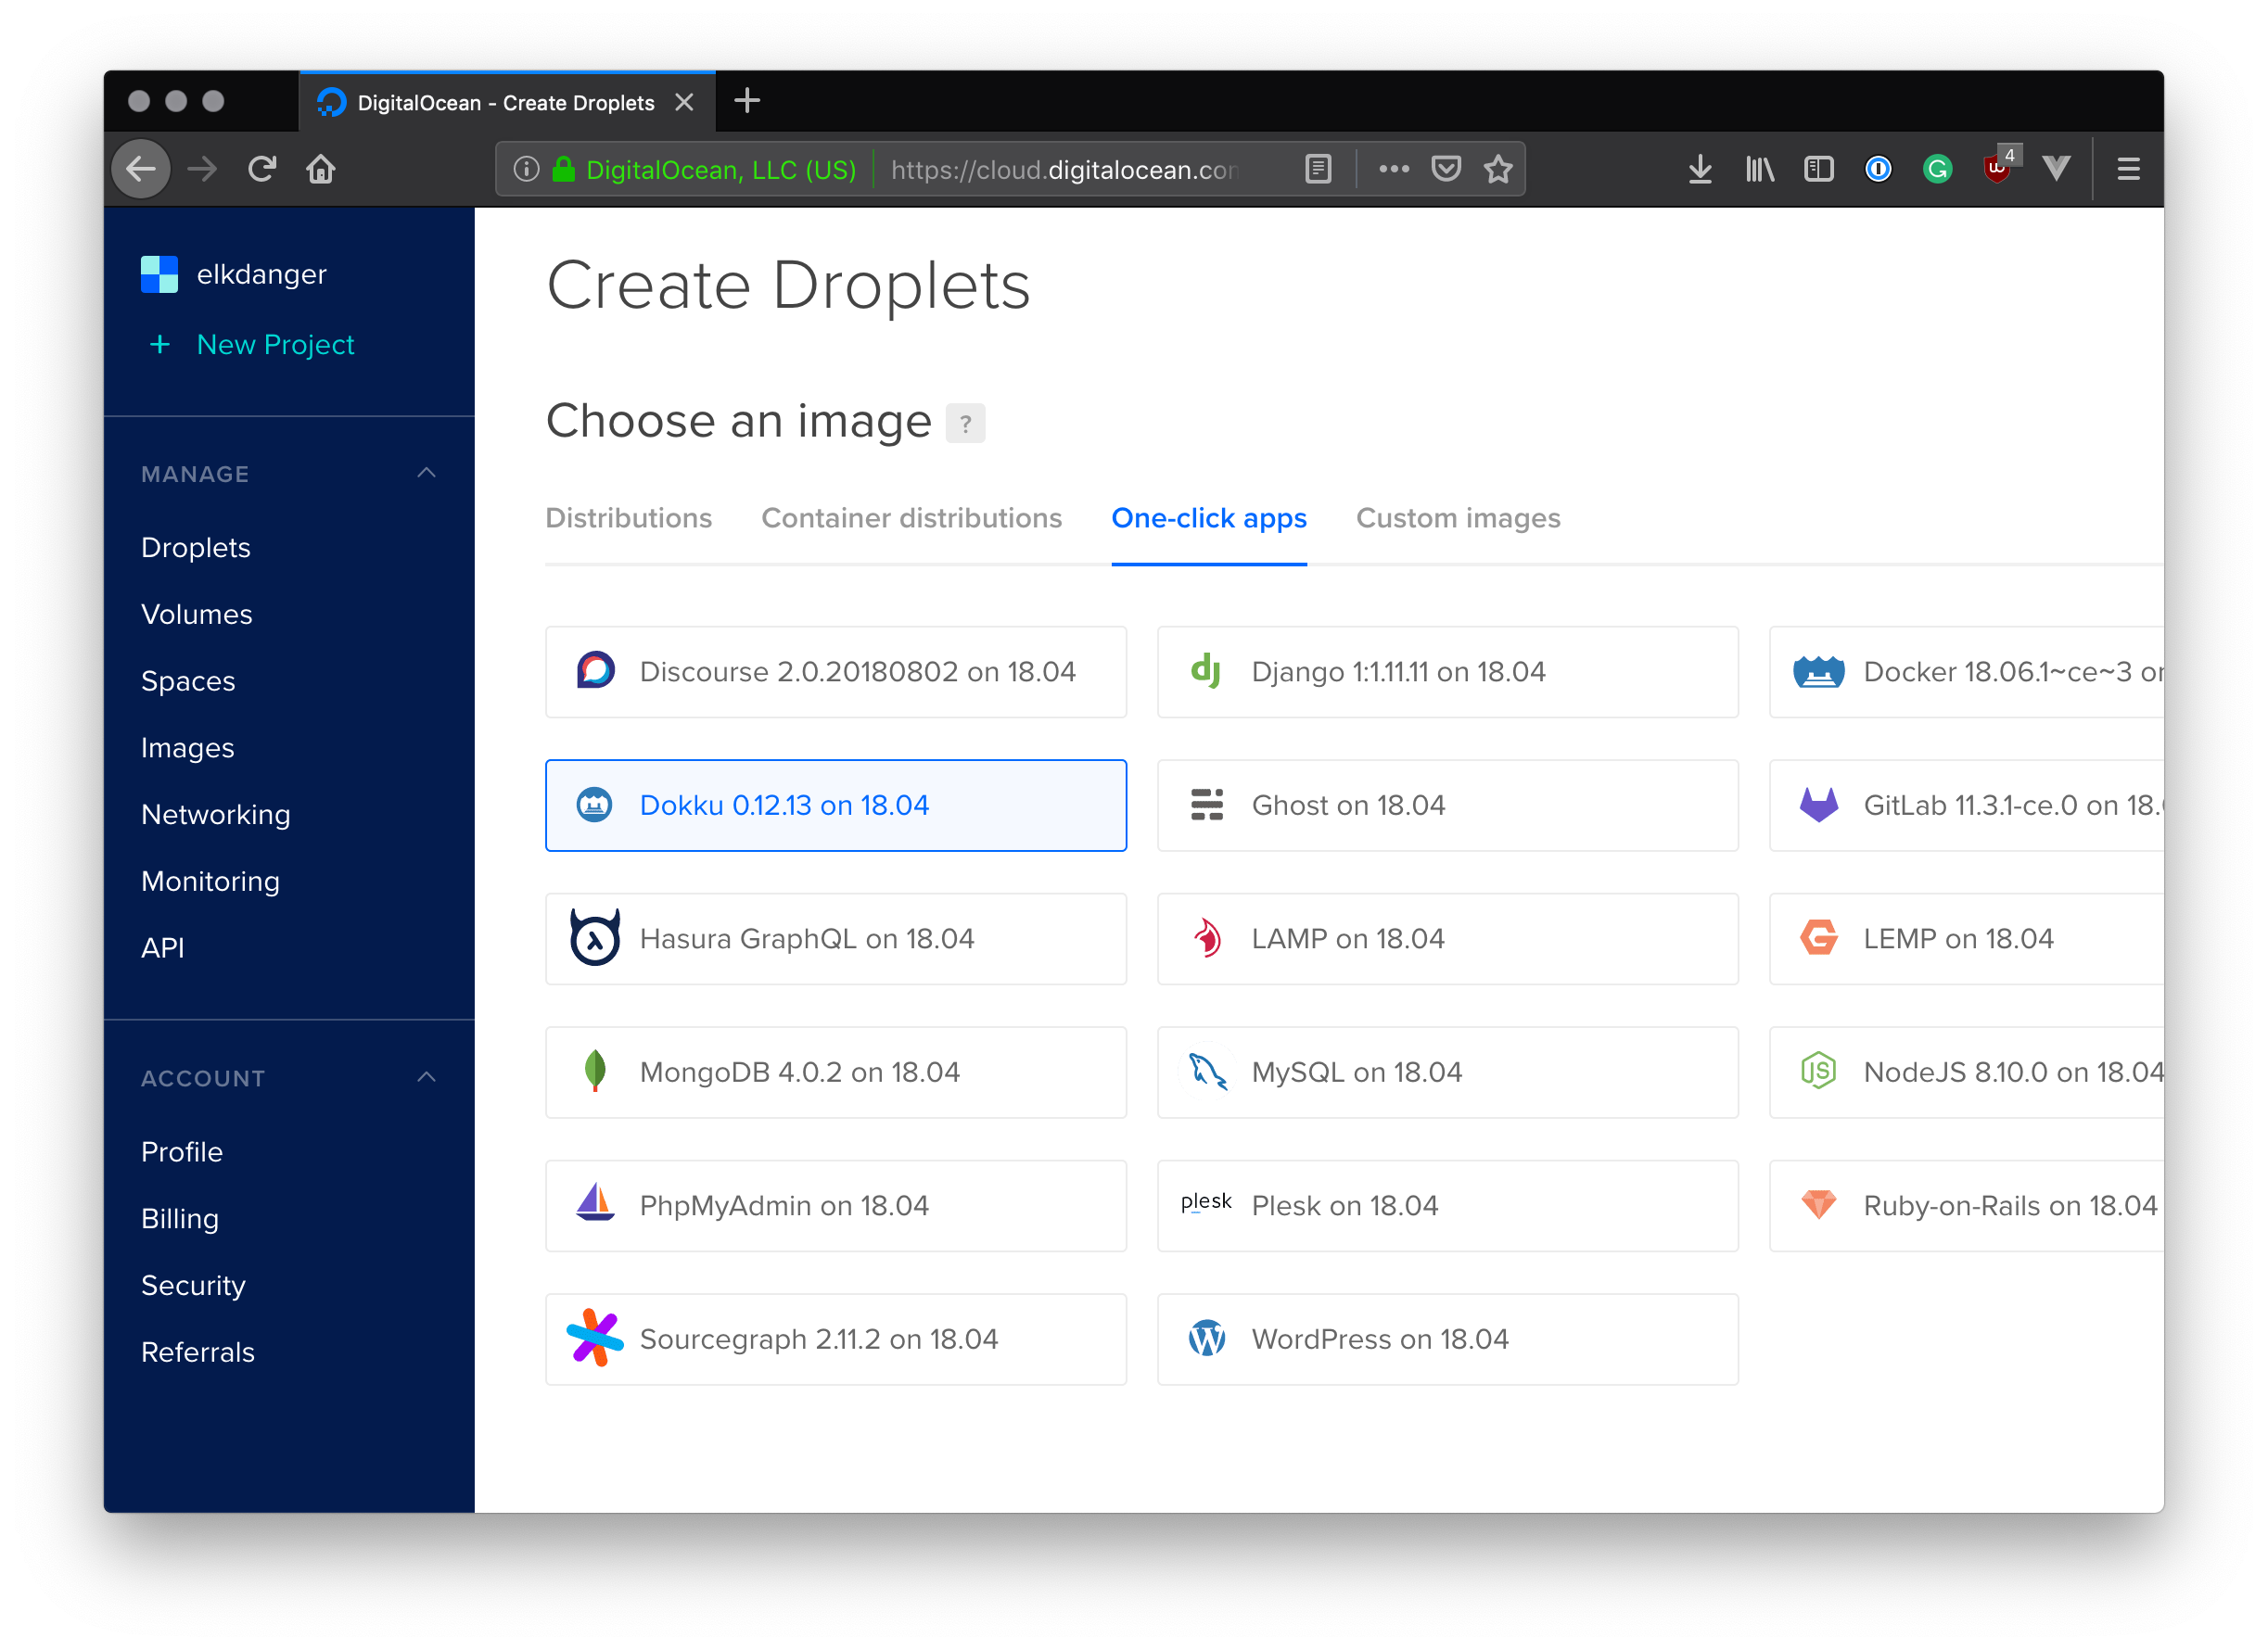 DigitalOcean One-click Apps